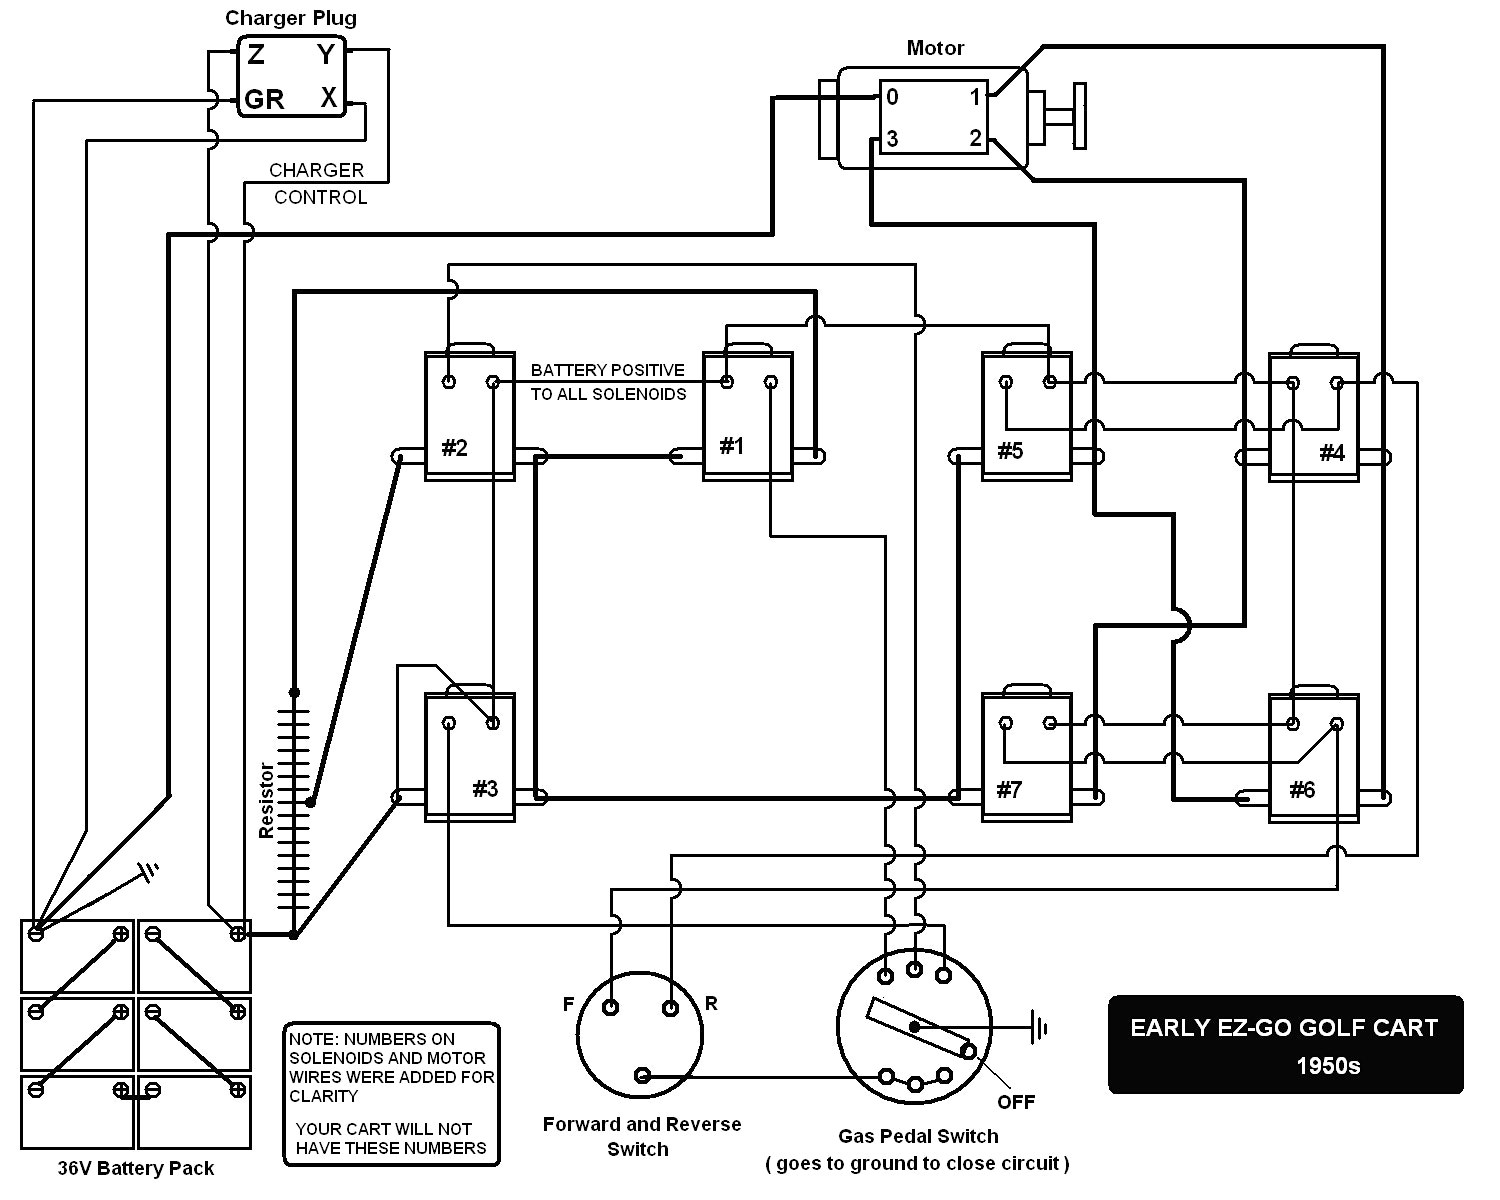 1983 ezgo wiring diagram gas electrical diagrams bakdesigns co and throughout